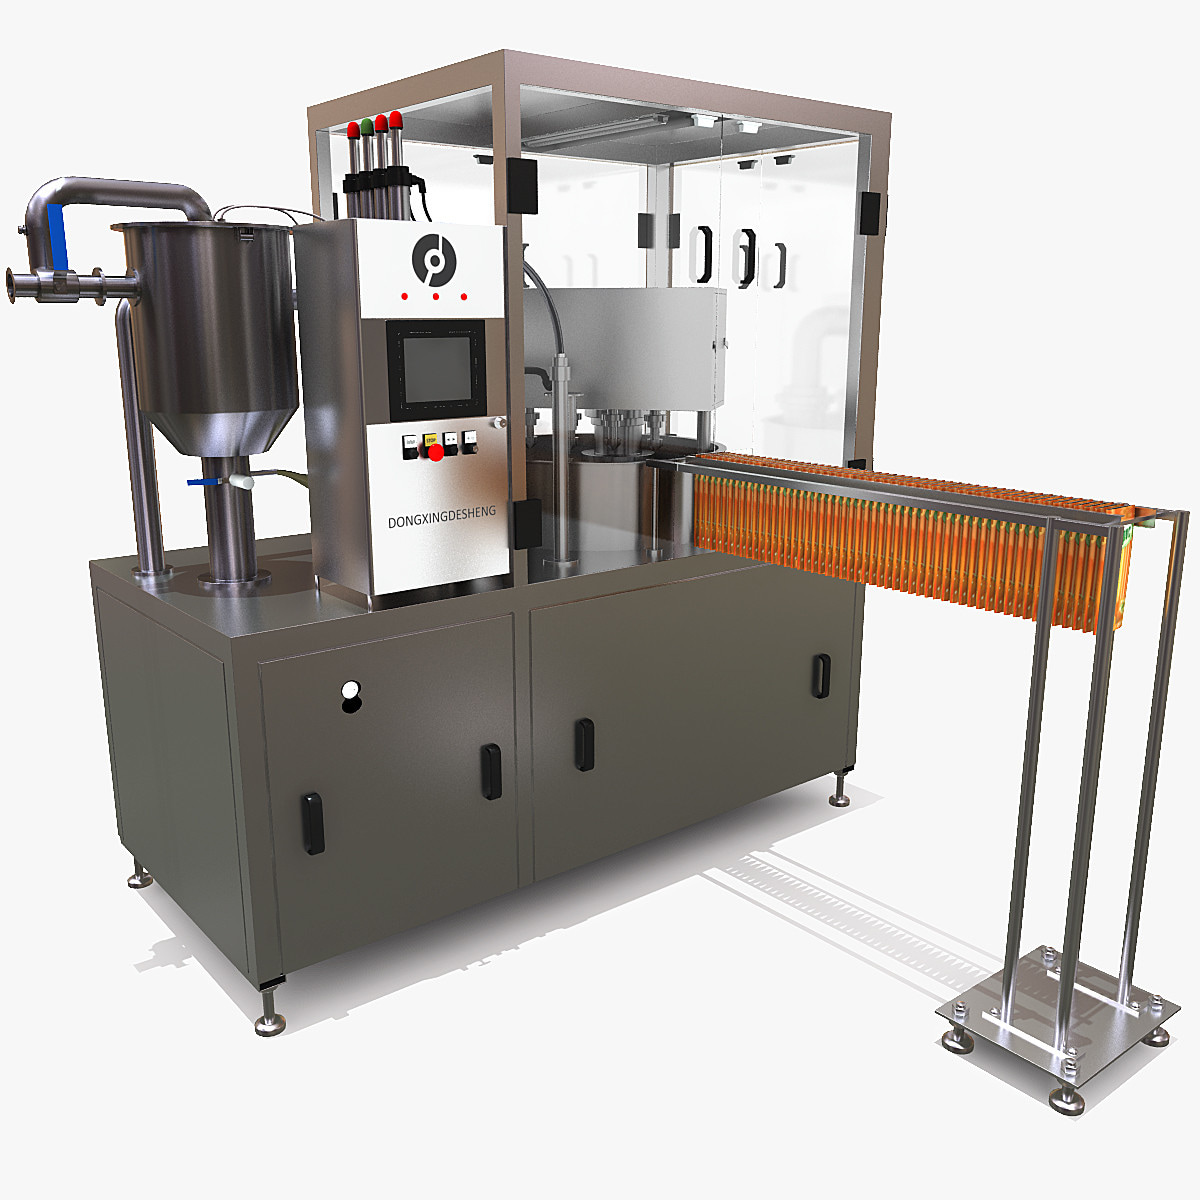 Factory_Food_Packing_Machine_00_2.jpg